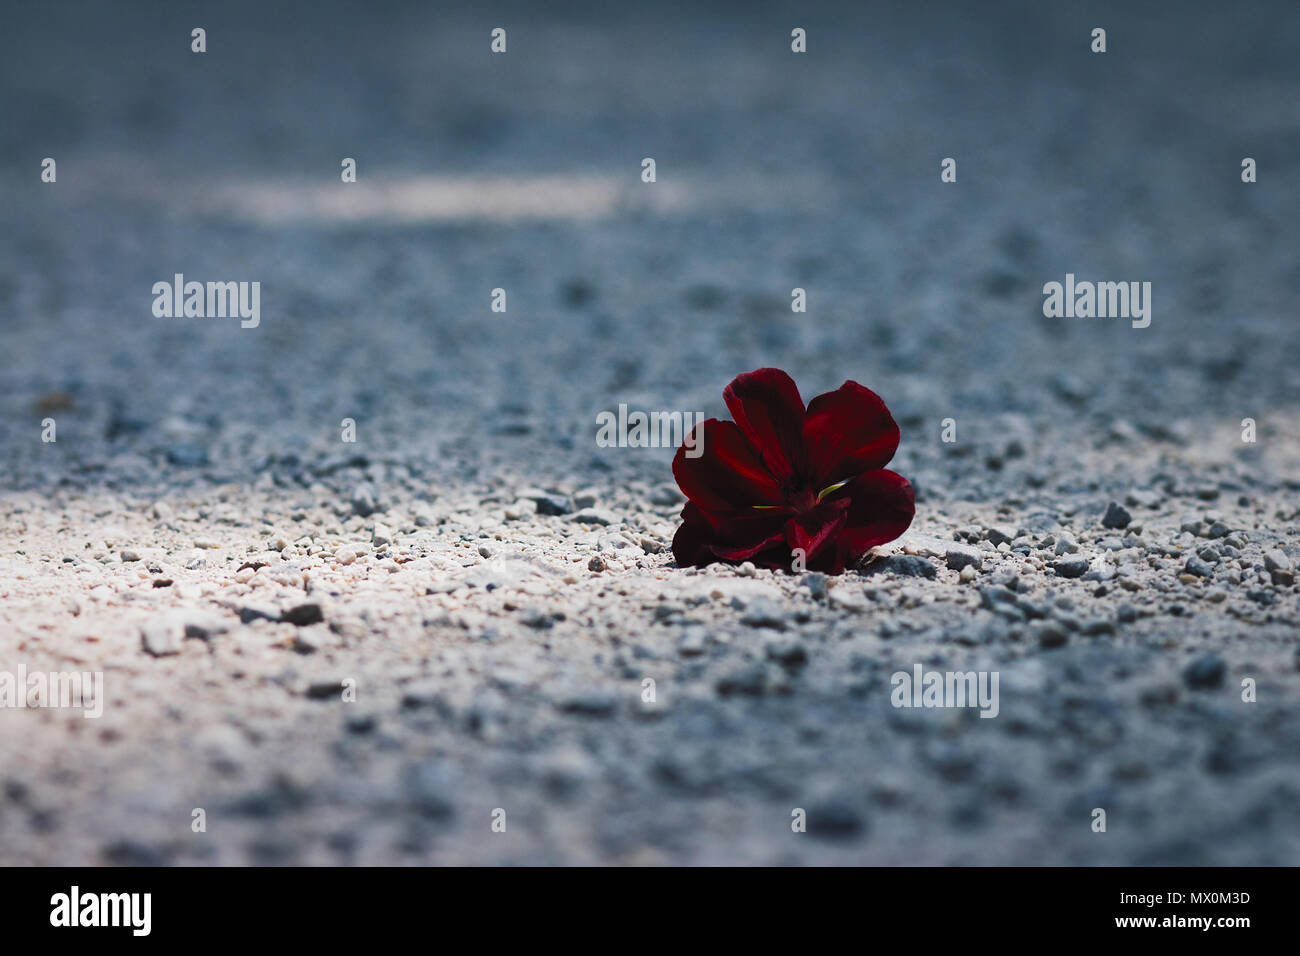 Lonely, thrown away, dark red flower lying on the gravel path in sunlight spot - Stock Image